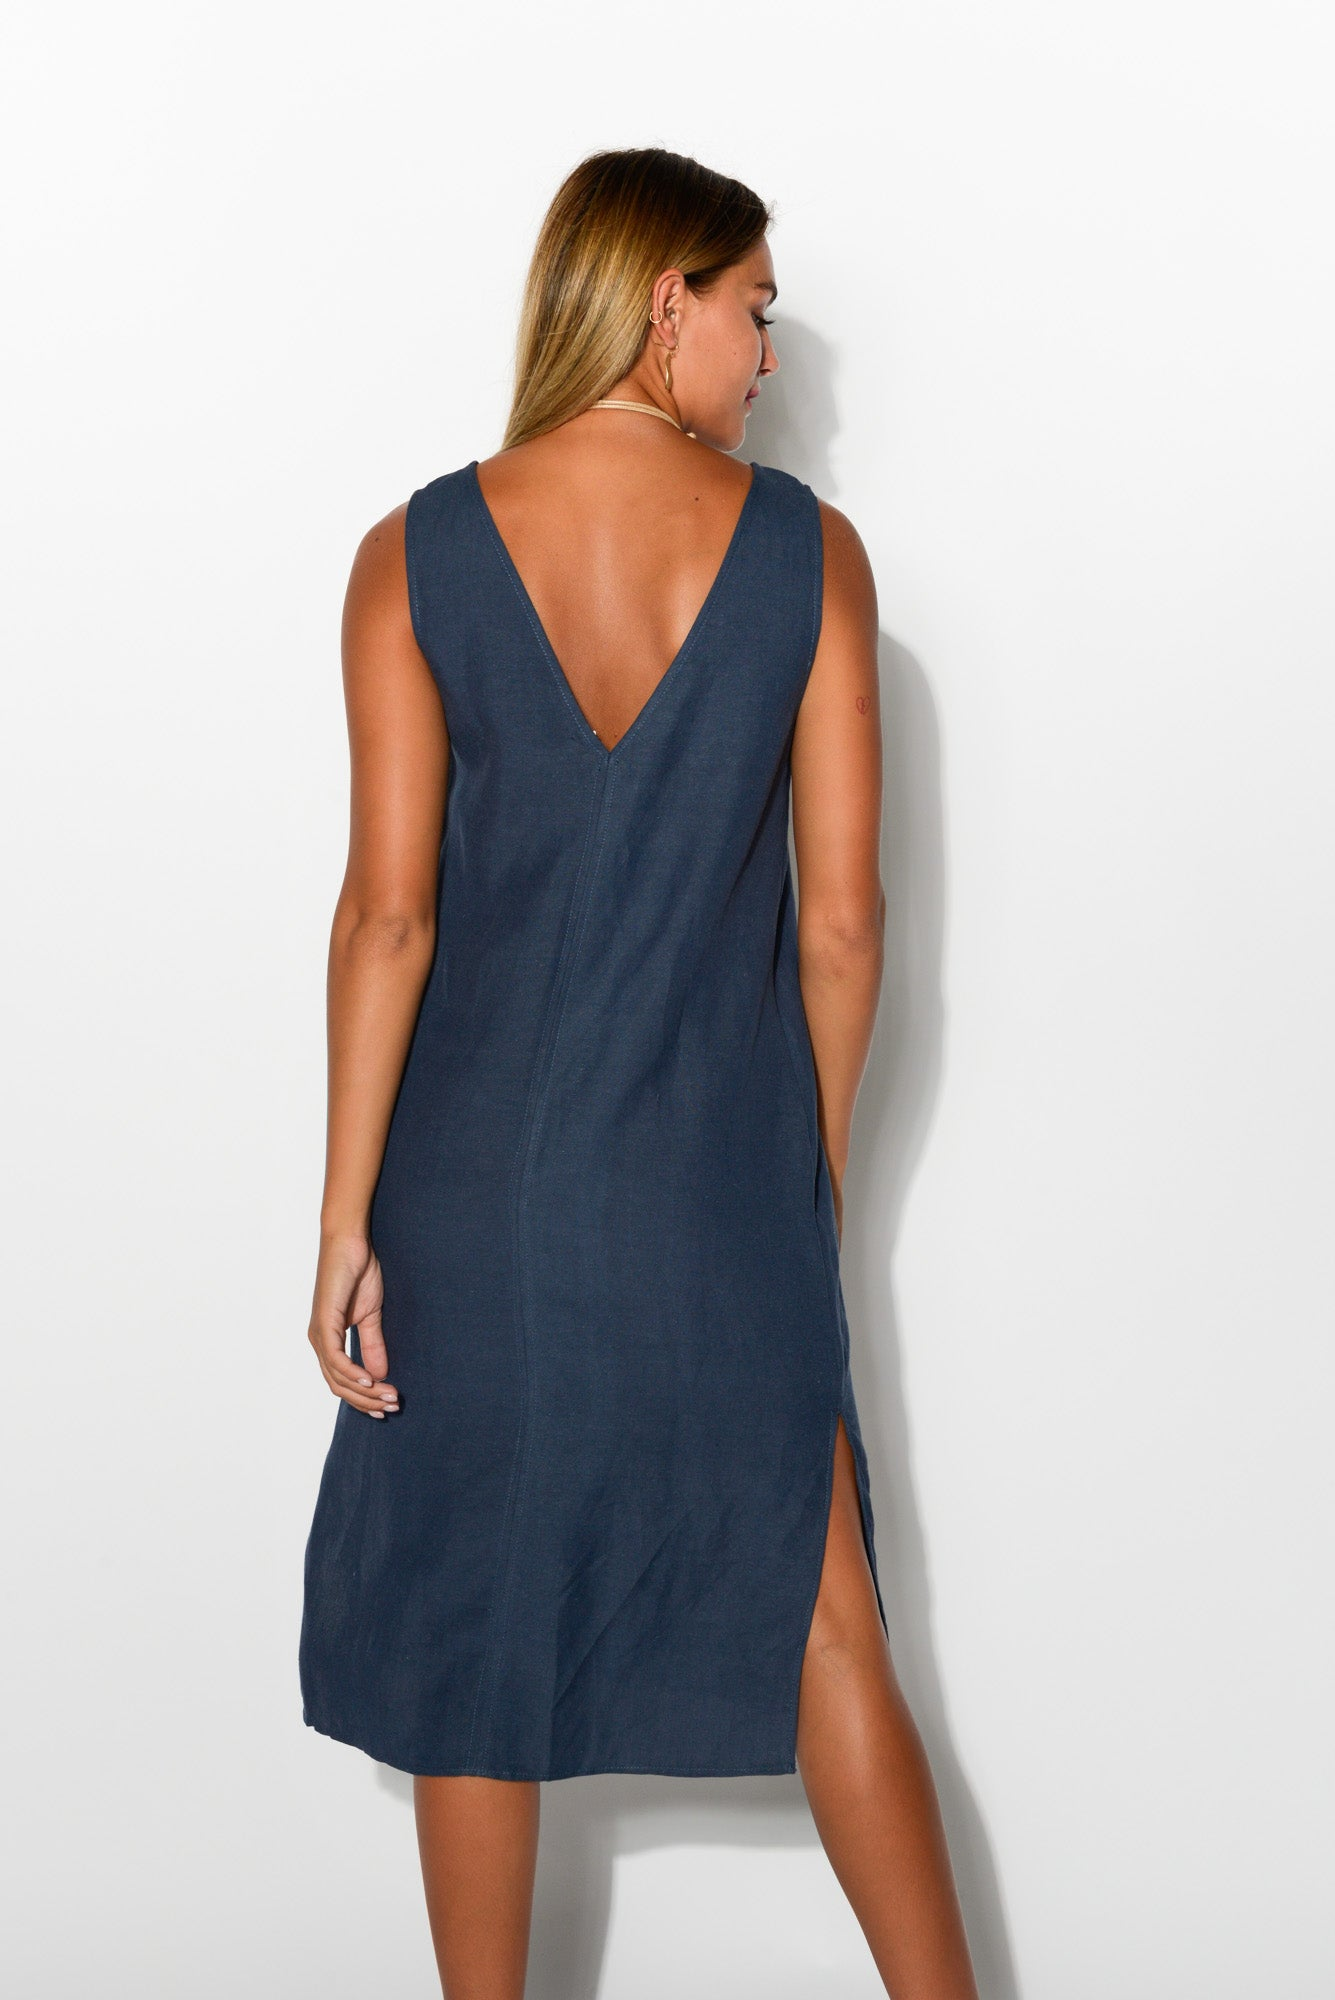 Navy Reversible Linen Blend Dress - Blue Bungalow